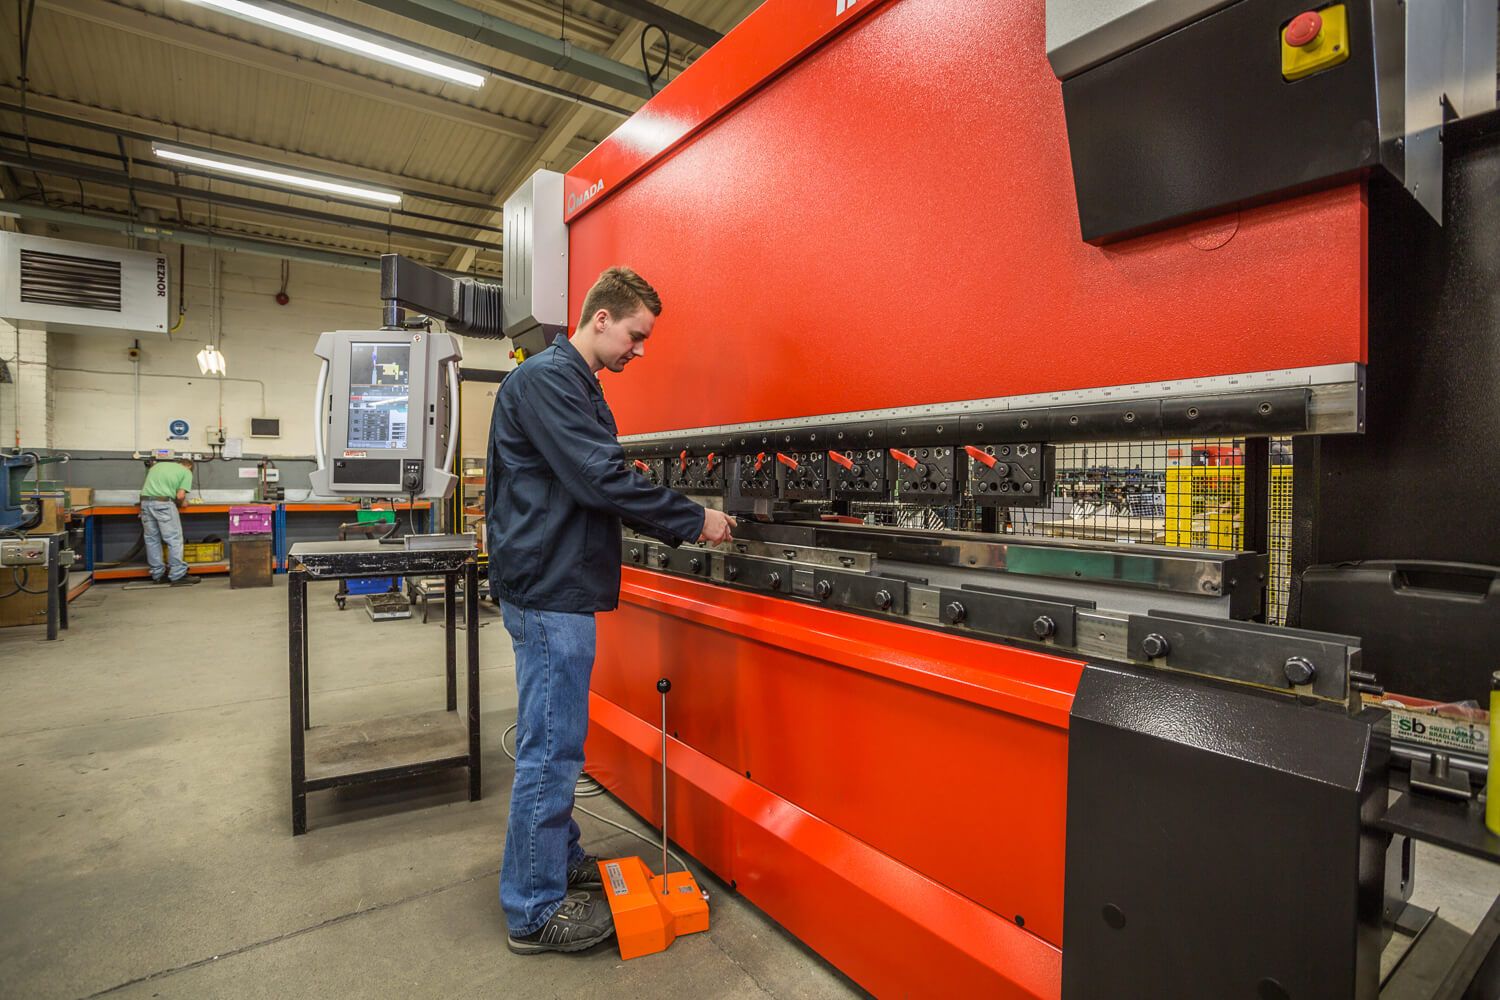 CNC Bending from Sweetnam & Bradley Sheet Metalwork Specialist